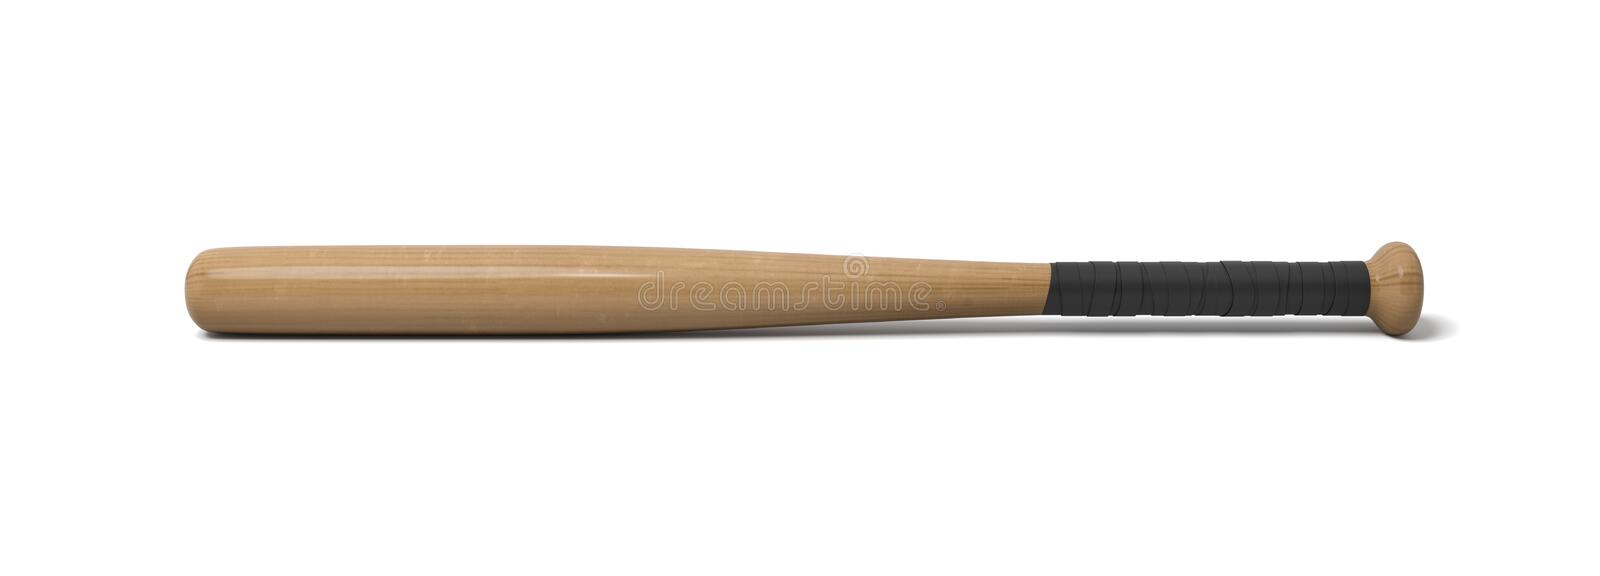 3d rendering of a single wooden baseball bat with a wrapped handle isolated on a white background. Bat and ball sport. Hitting equipment. American pastime royalty free illustration